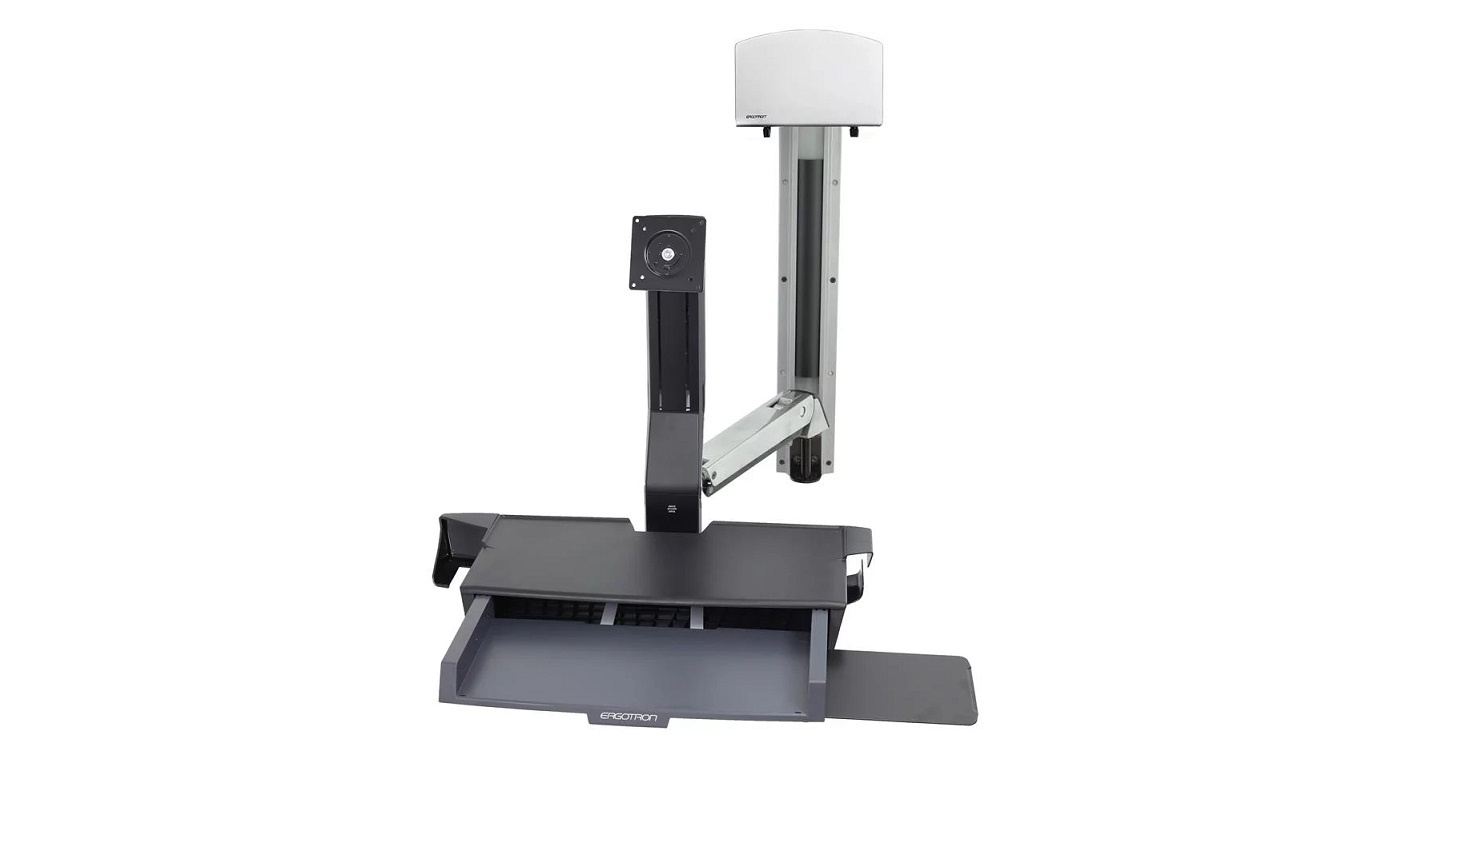 Ergotron Sit-Stand Combo System With Worksurface For CPU 24 Screen Support 45-270-026